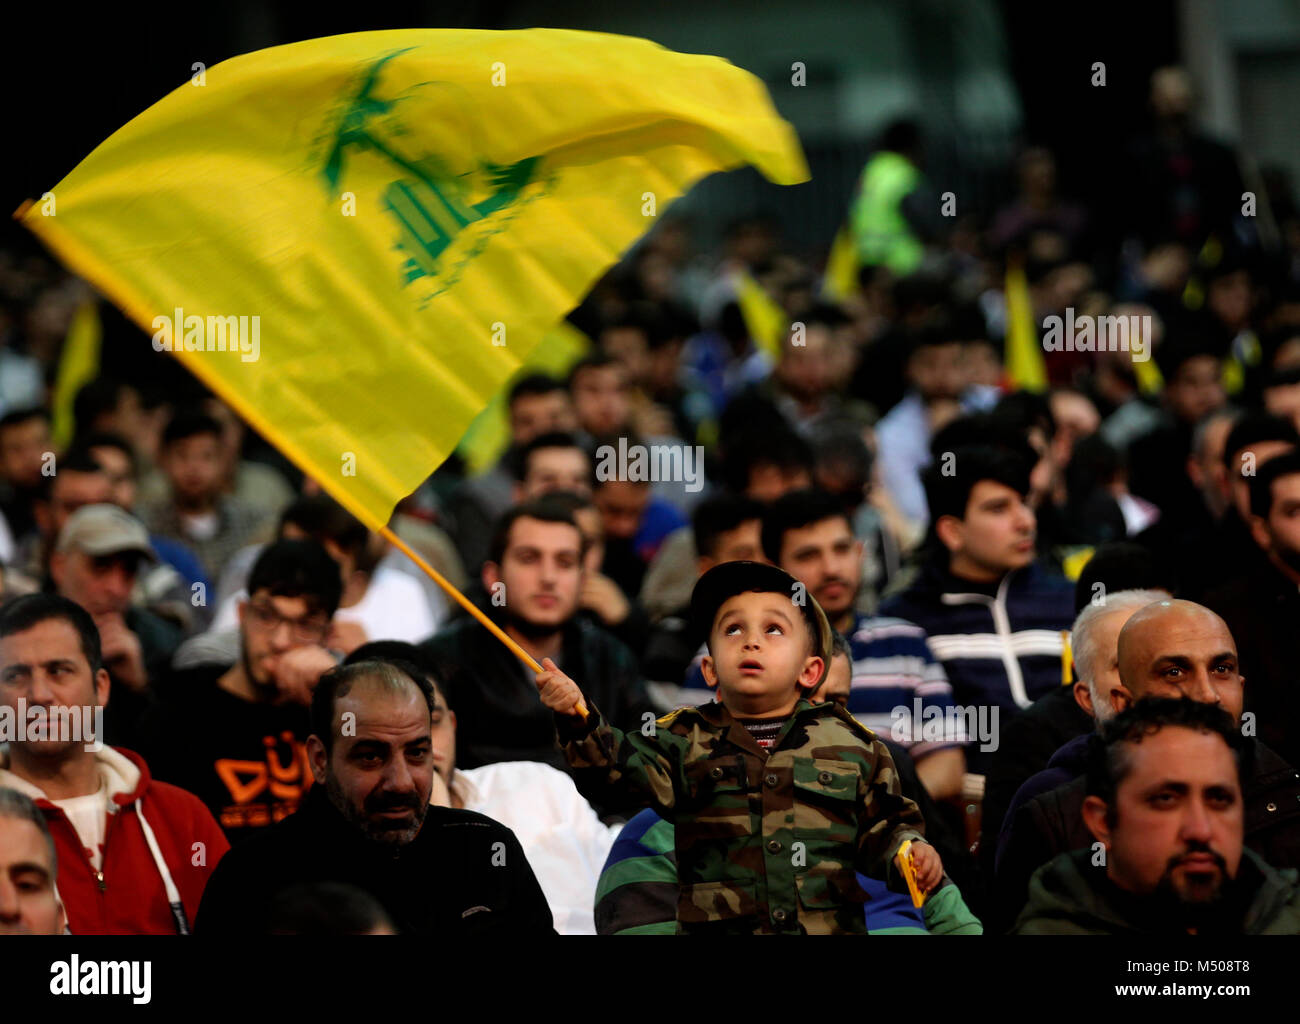 16 Febuary 2018, Lebanon, Beirut: A child sways a Hezbollah flag during a memorial service in the honour of three - Stock Image